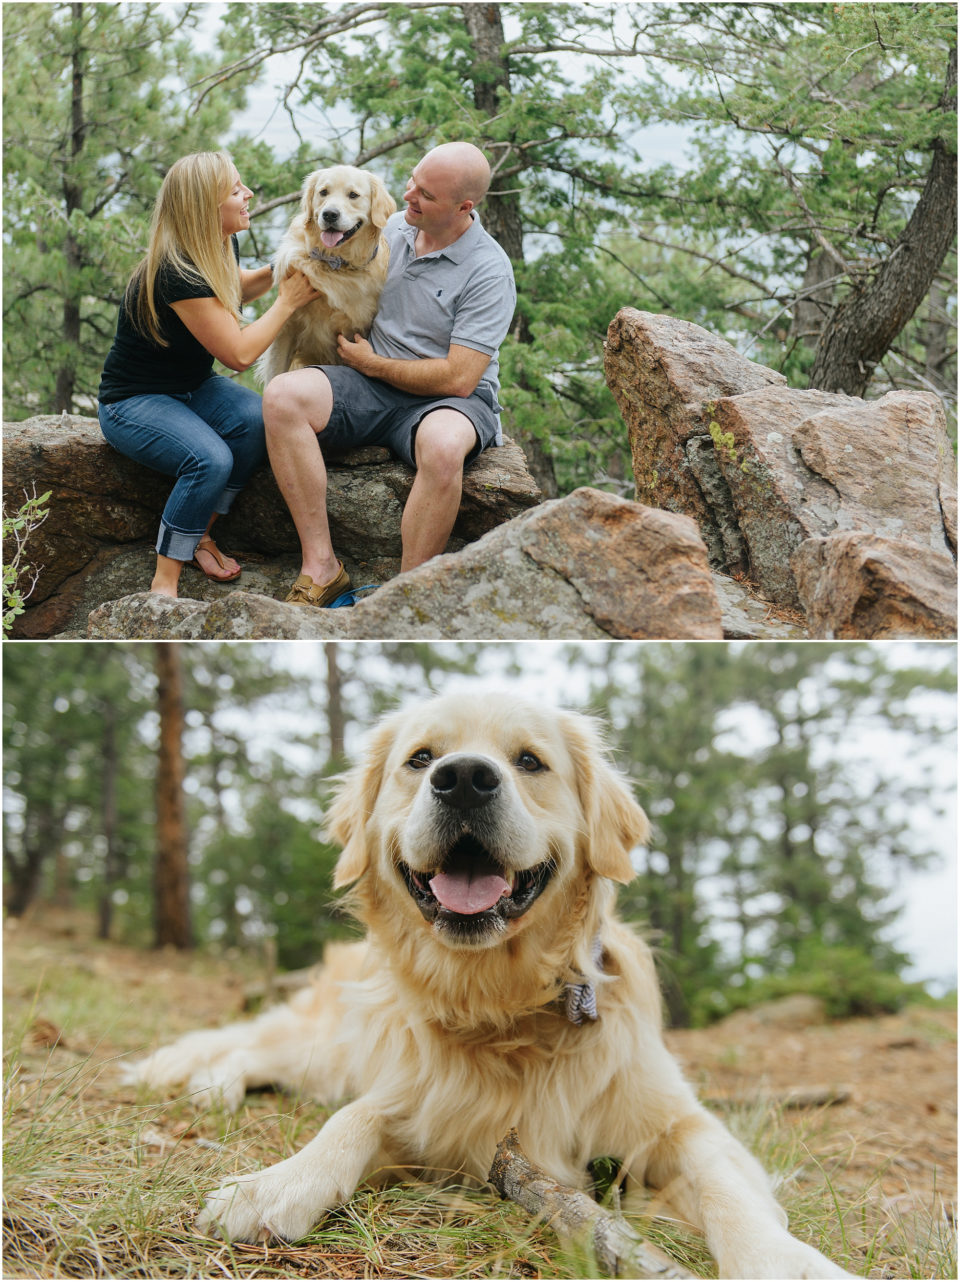 Playing with the dog in the mountains.